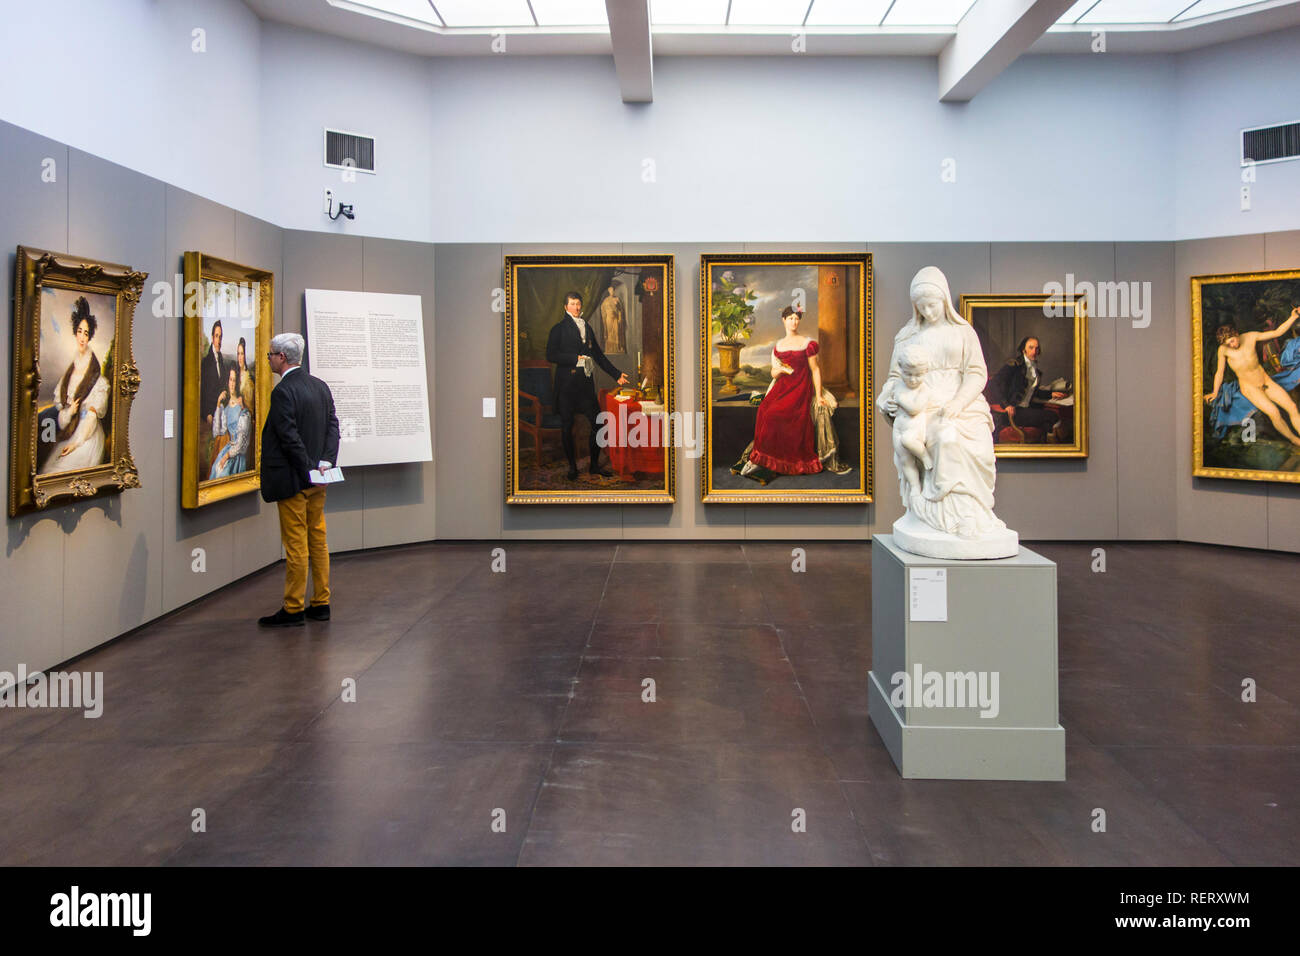 Visitor looking at 19th century Neoclassical paintings in the Groeningemuseum, Fine Arts Museum in the city Bruges, West Flanders, Belgium - Stock Image